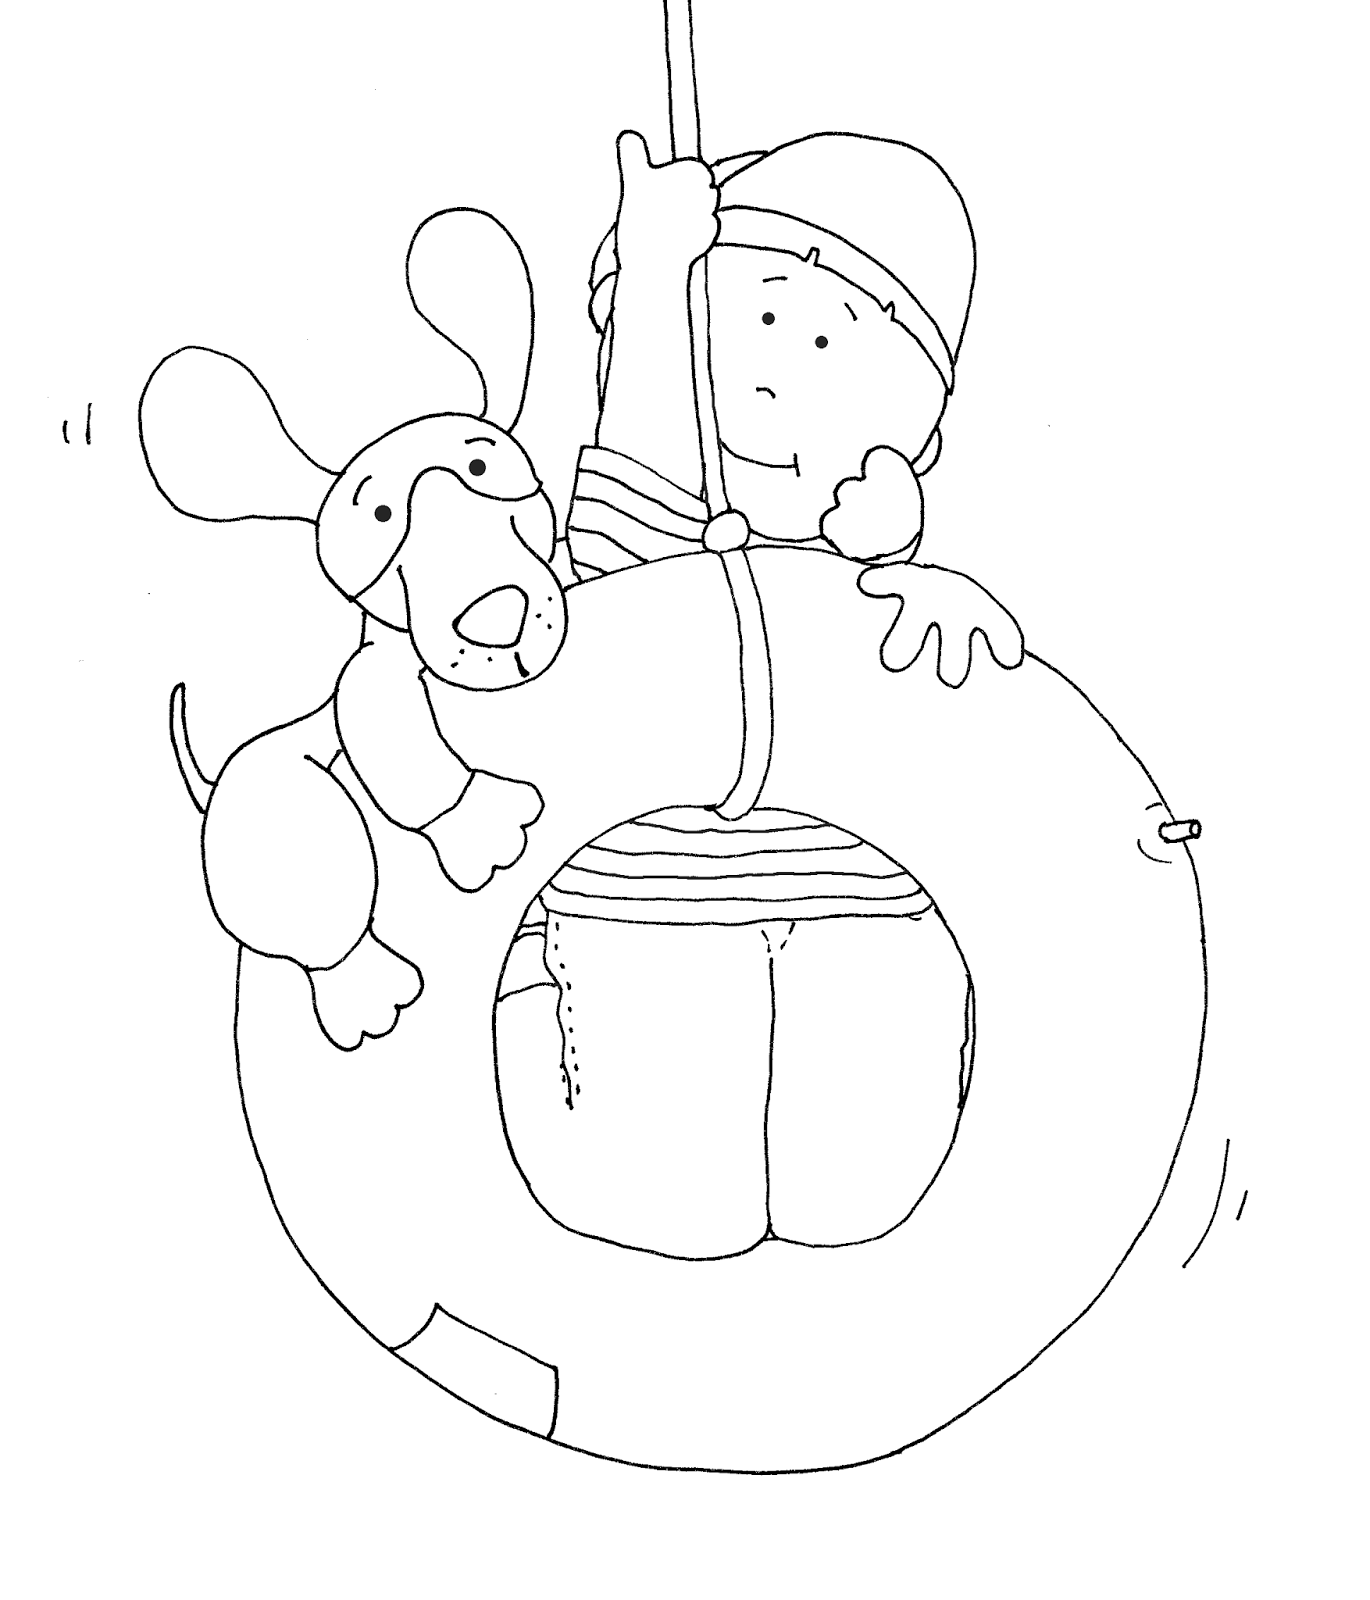 1370x1600 Tire Swing Buddies Coloring Pages Tired